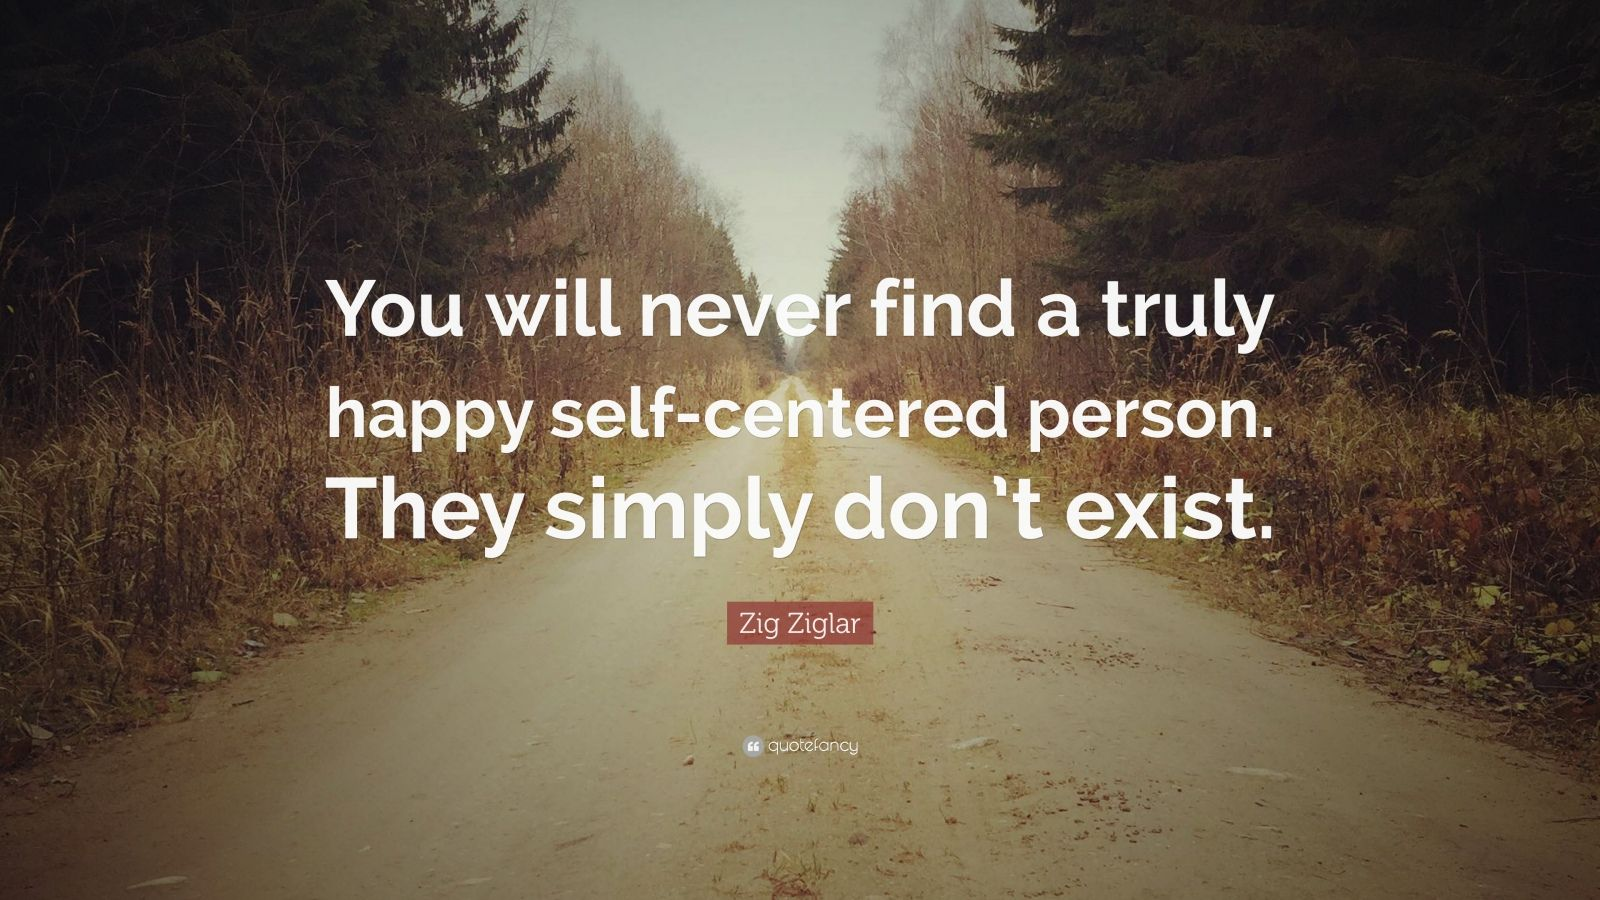 """Zig Ziglar Quote: """"You will never find a truly happy self-centered person. They simply don't exist."""""""